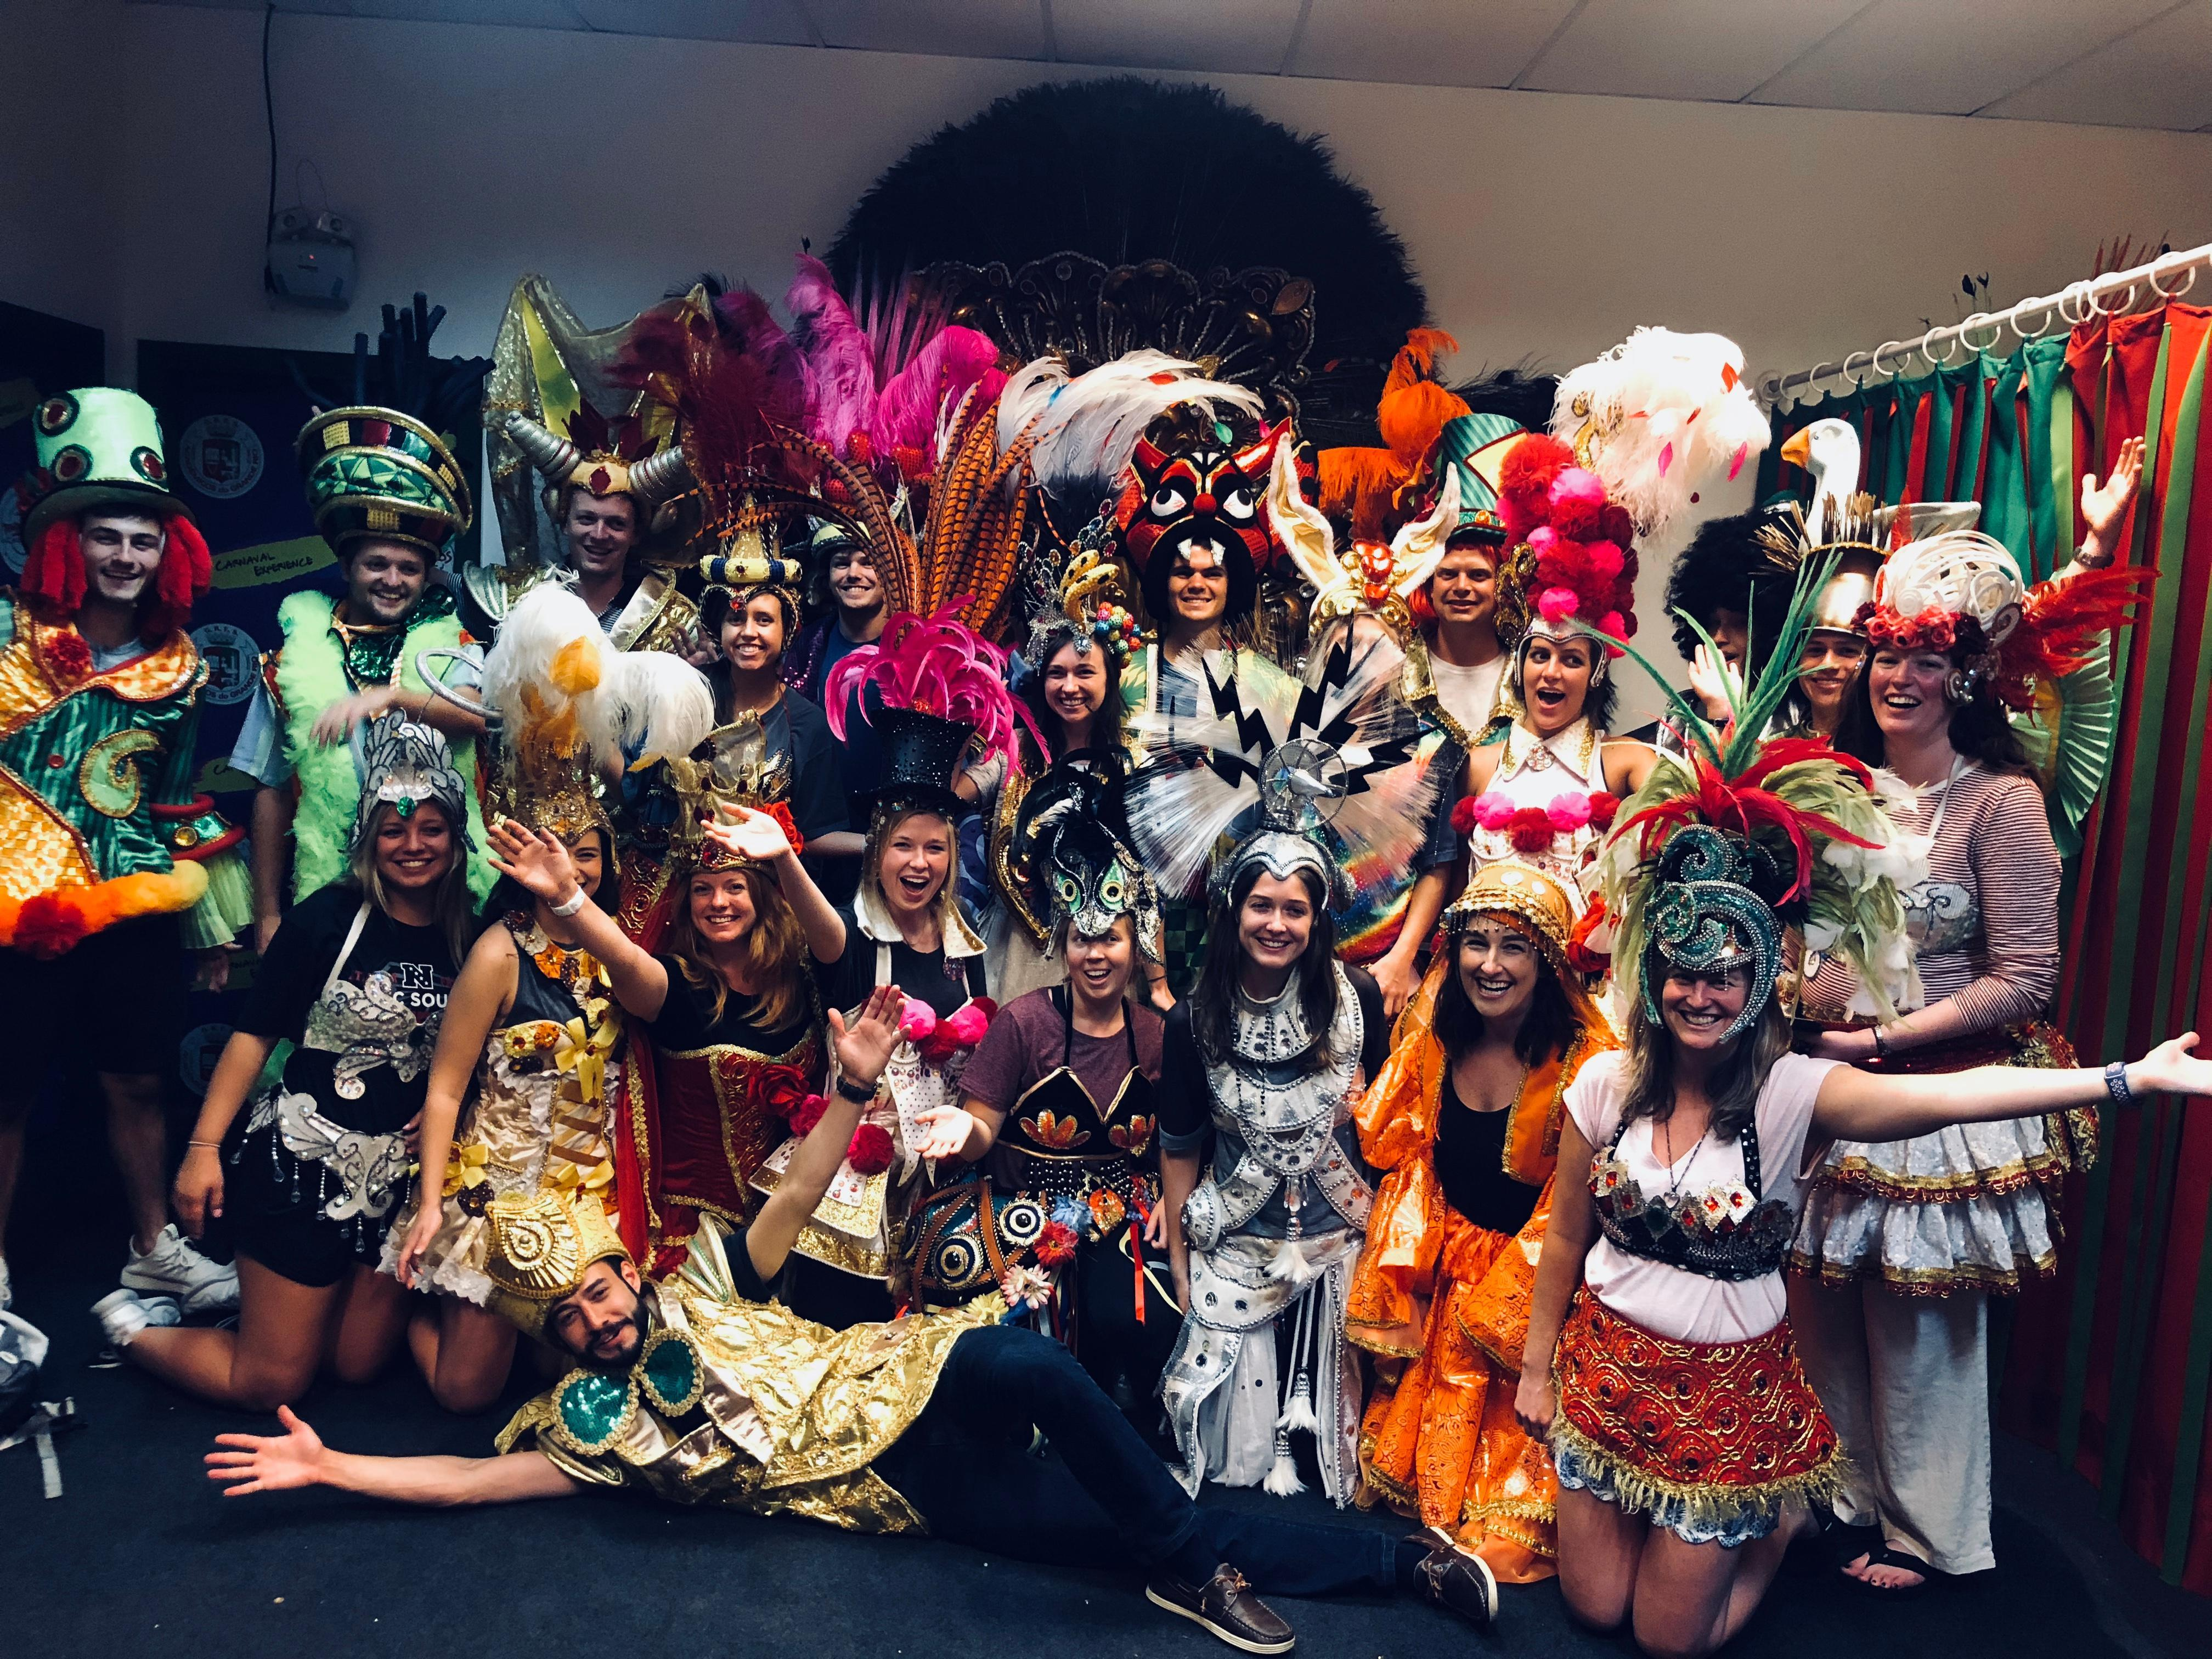 MAcc students learn about the history and pageantry of Carnival in Rio de Janiero